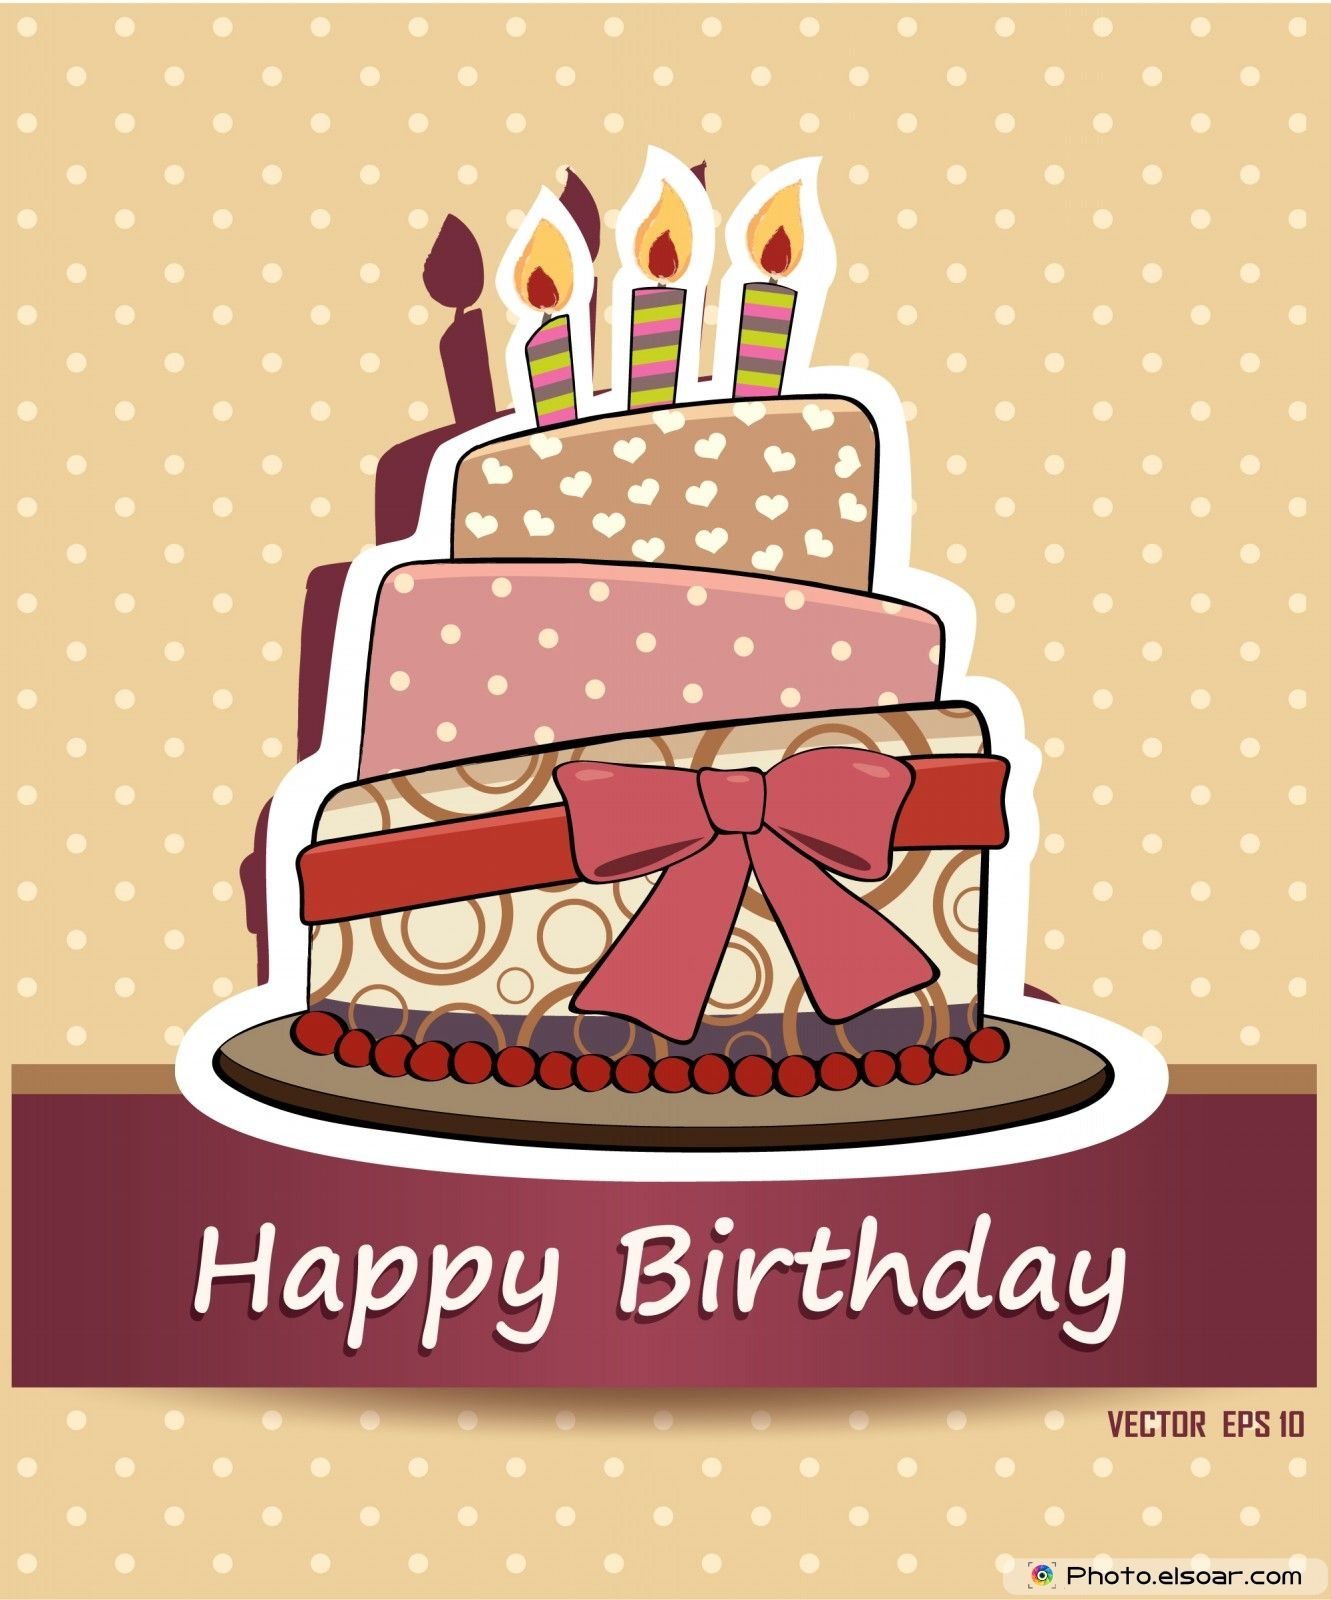 Happy birthday card birthday cake birthday posters pinterest happy birthday card birthday cake bookmarktalkfo Image collections